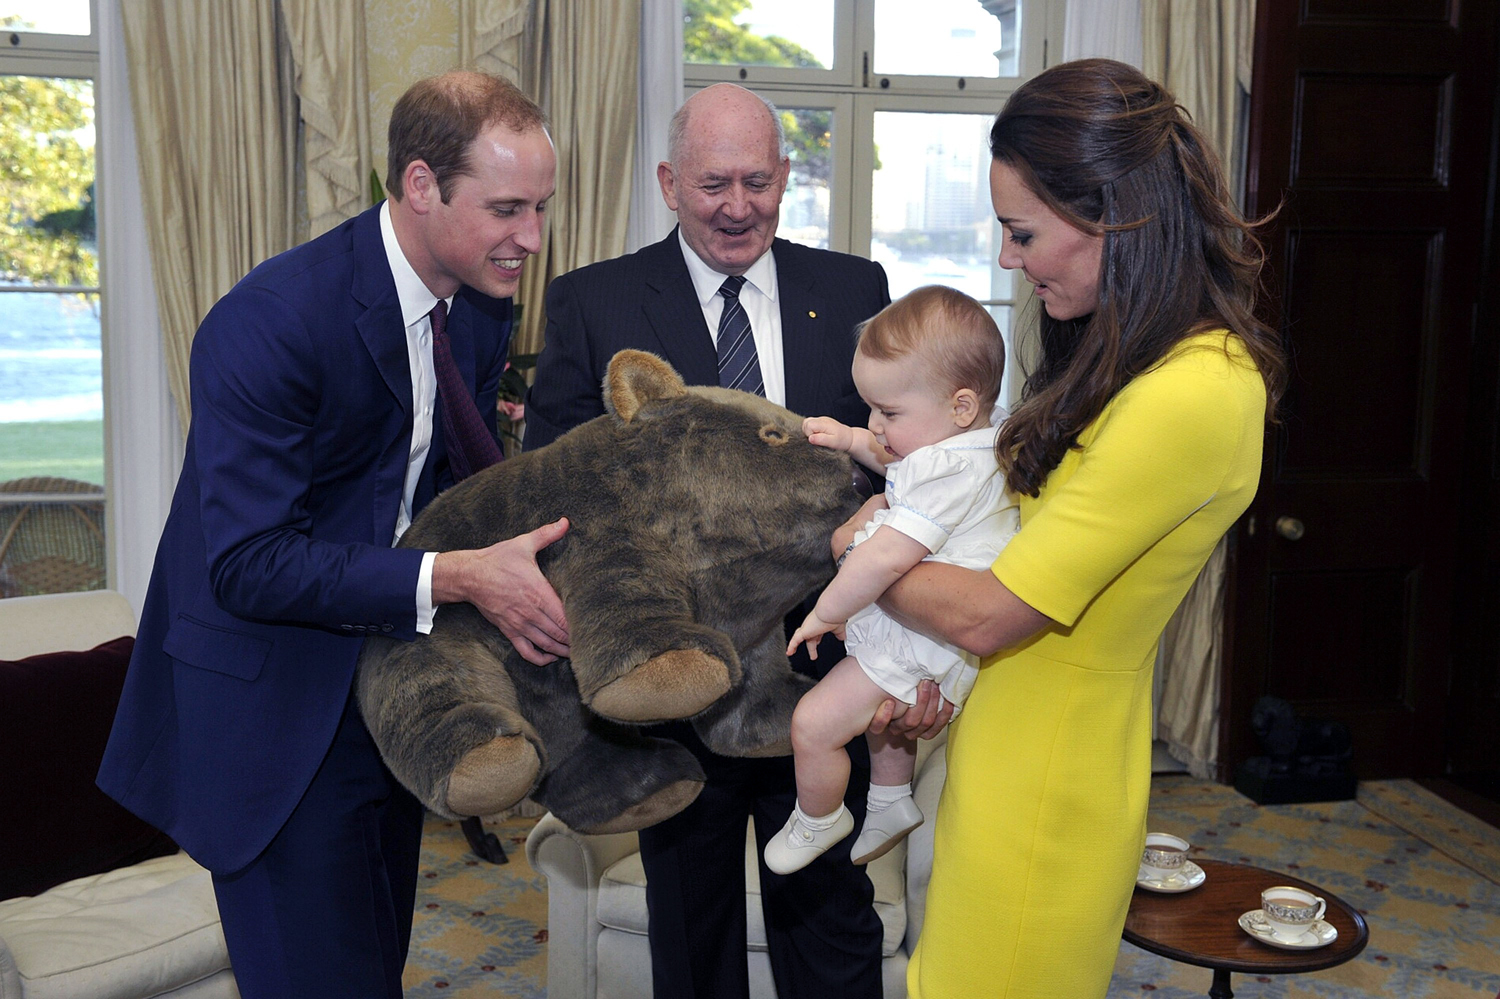 Prince George of Cambridge, with his parents Prince William, Duke of Cambridge and Catherine, Duchess of Cambridge, receives a gift from the Governor-General, Sir Peter Cosgrove, at Admiralty House, on April 16, 2014 in Sydney. The Duke and Duchess of Cambridge are on a three-week tour of Australia and New Zealand, the first official trip overseas with their son, Prince George of Cambridge.